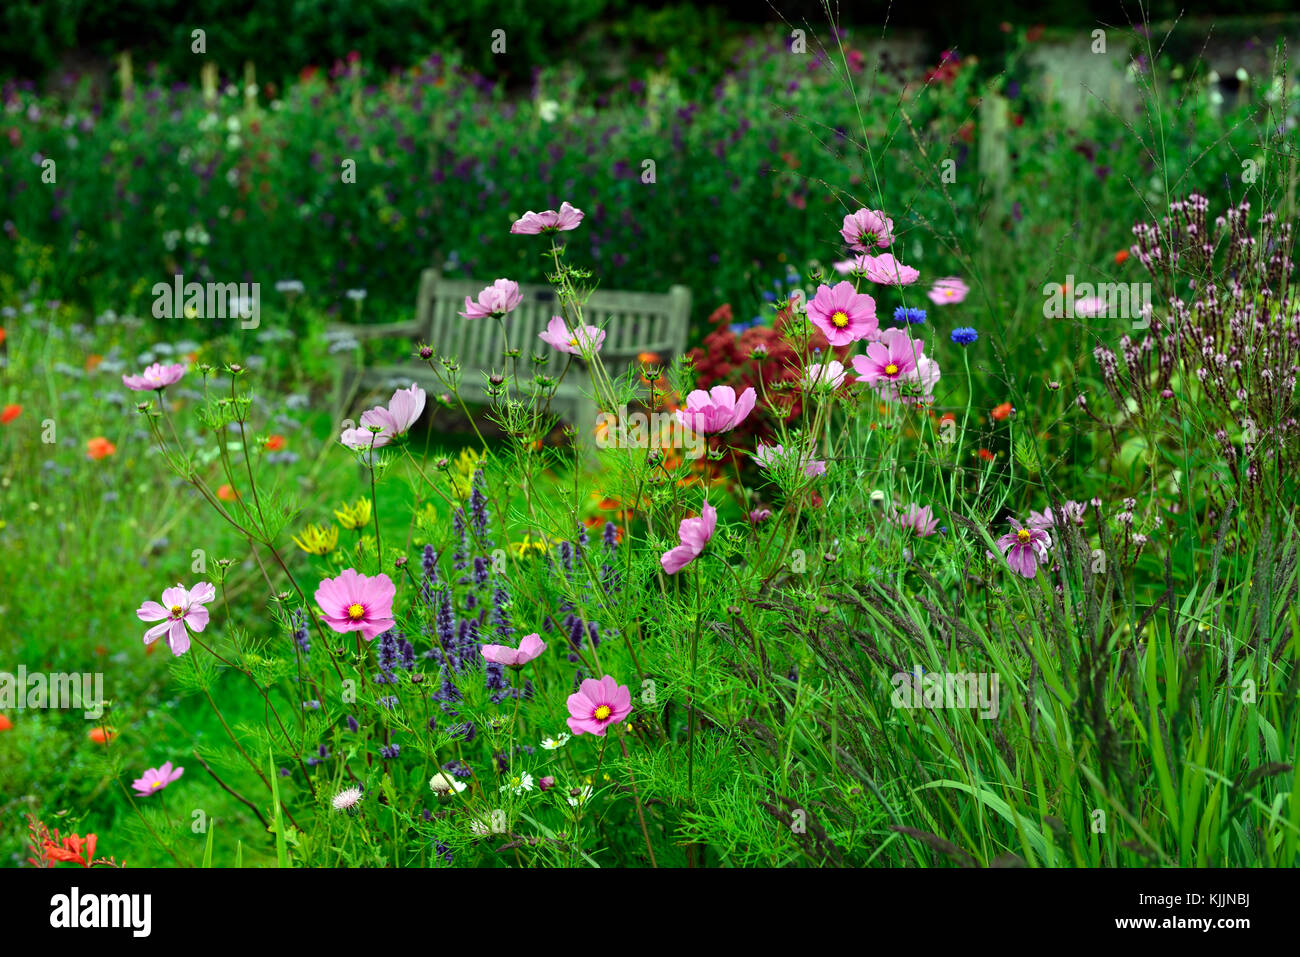 Cosmos flower single pink annualannuals flower flowers stock cosmos flower single pink annualannuals flower flowers flowering rm floral izmirmasajfo Gallery